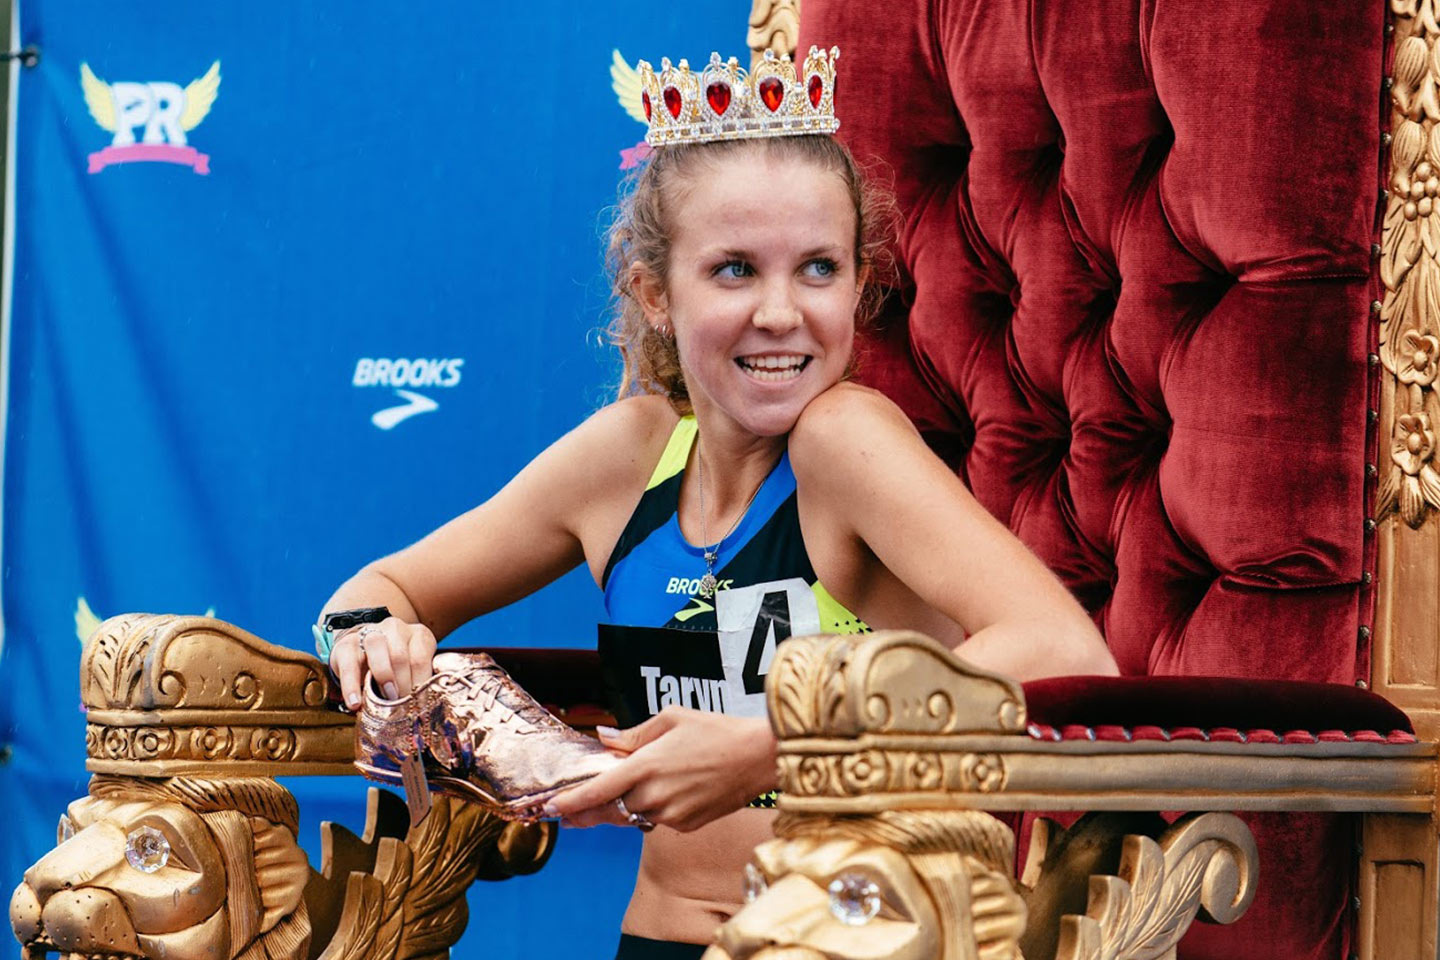 An athlete sits on a throne with a crown and holding a golden shoe